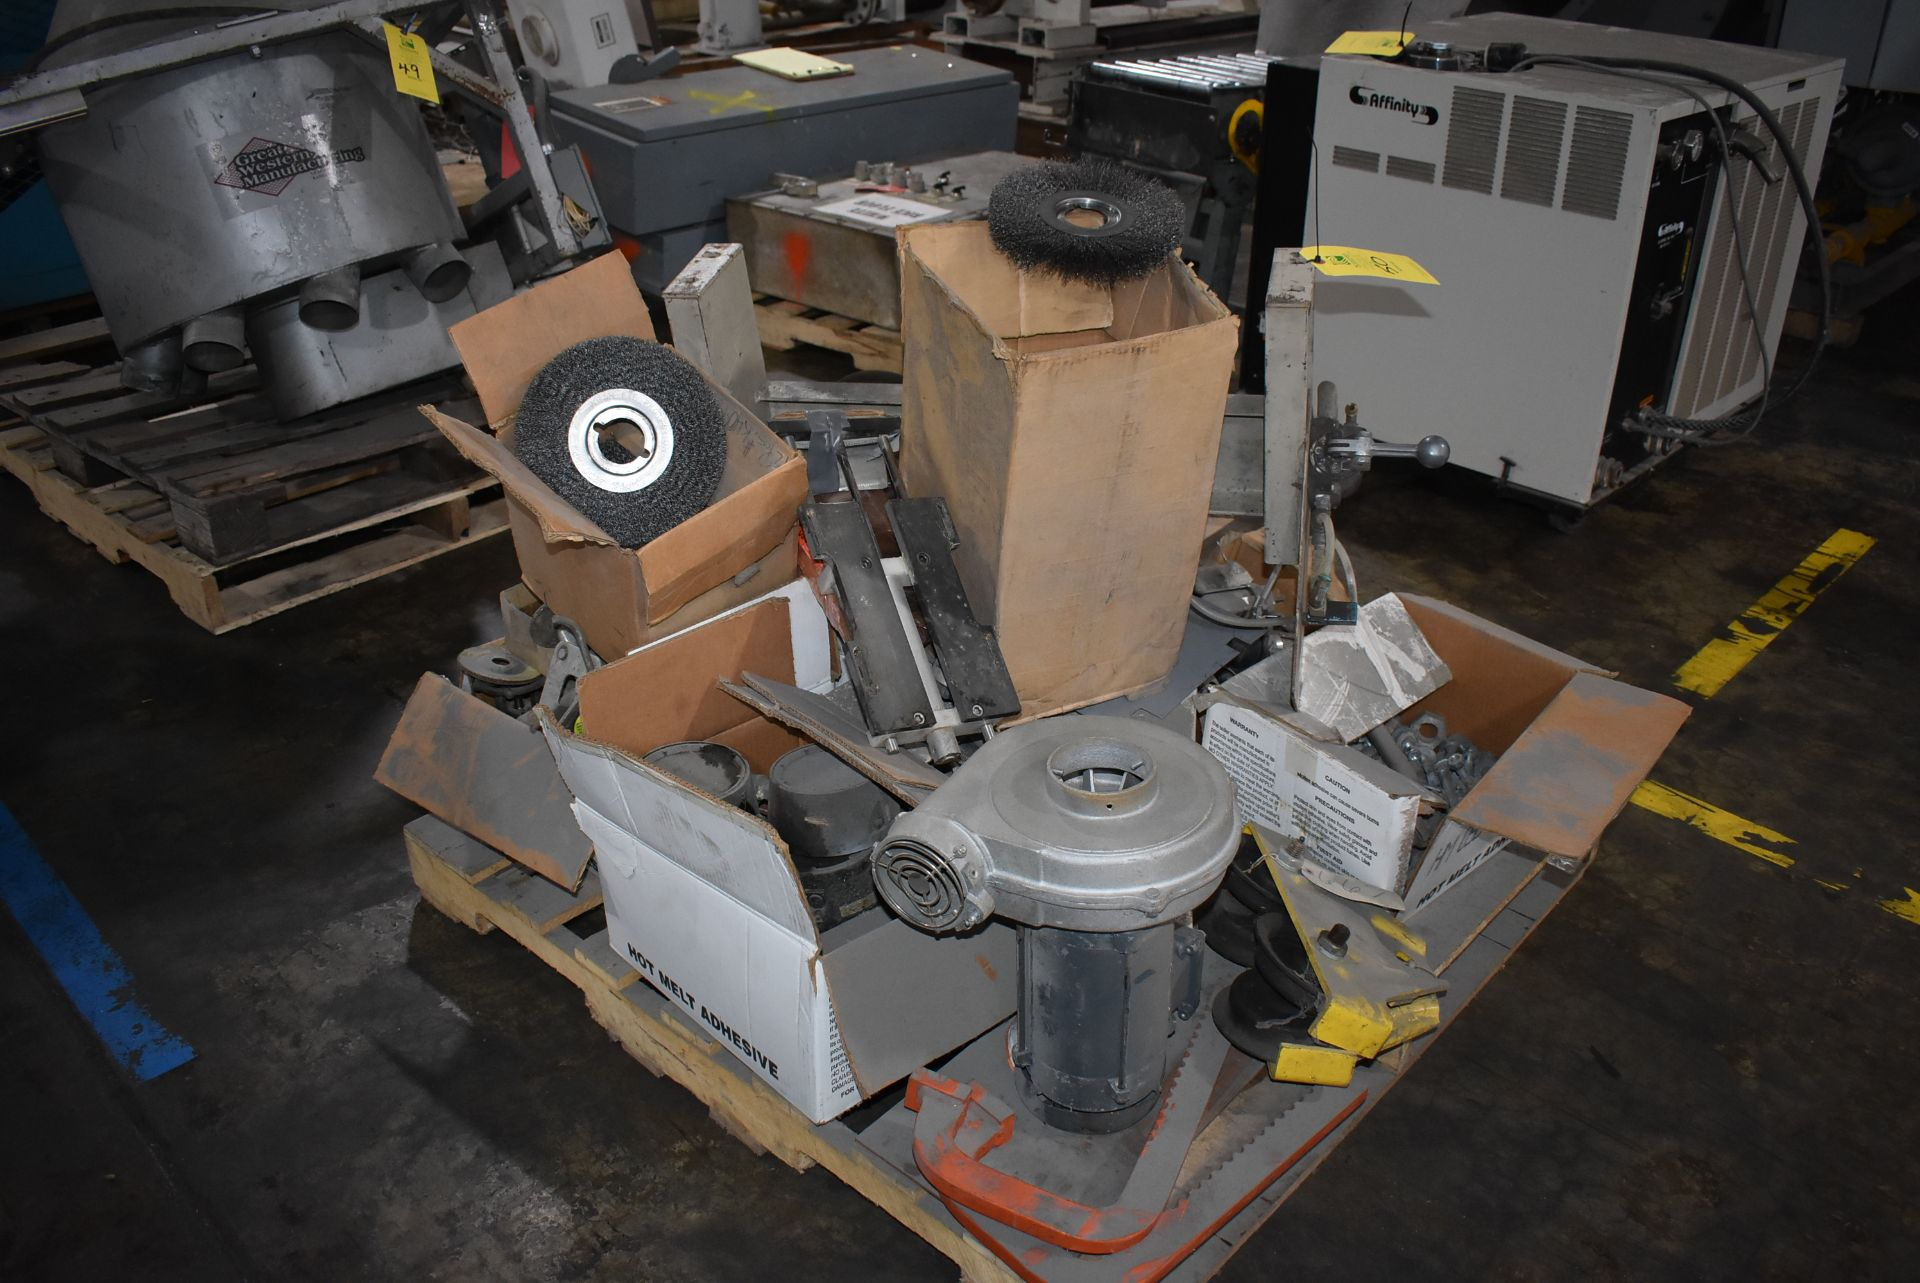 Plant Support - Budgit Hoist Trolley, Assorted Wire Wheels, Blower & Components - Image 2 of 3